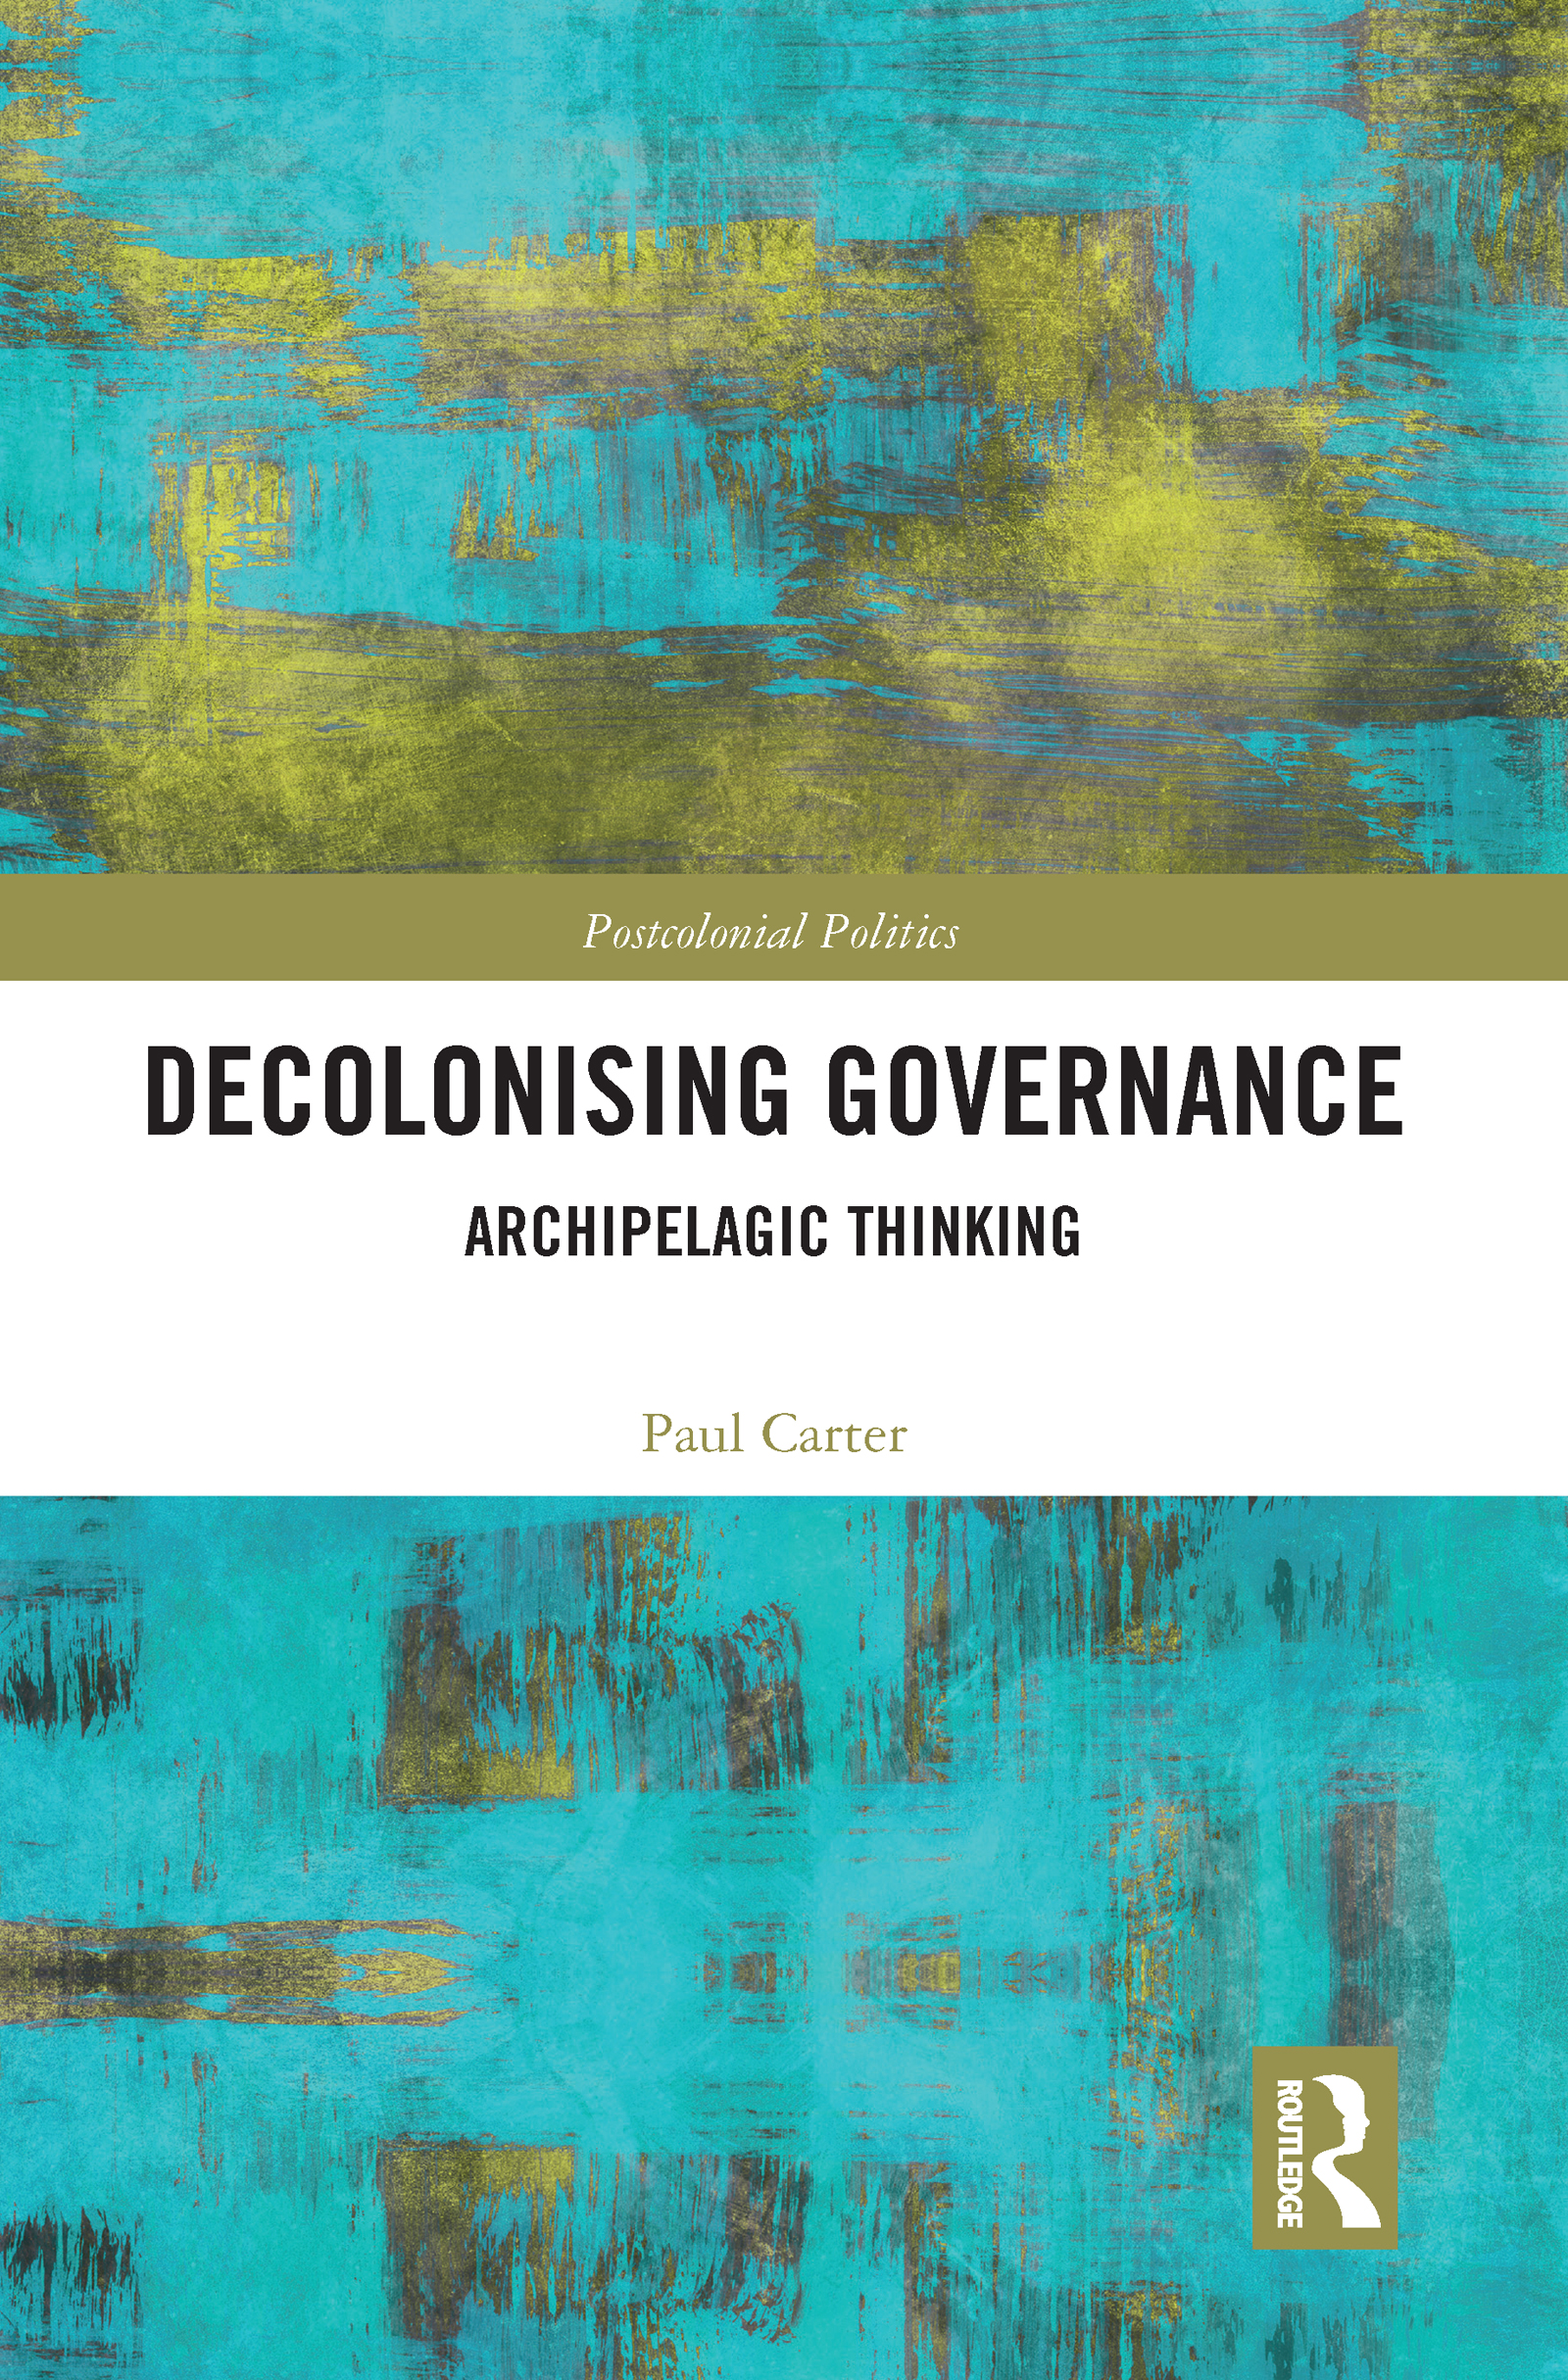 Decolonising Governance